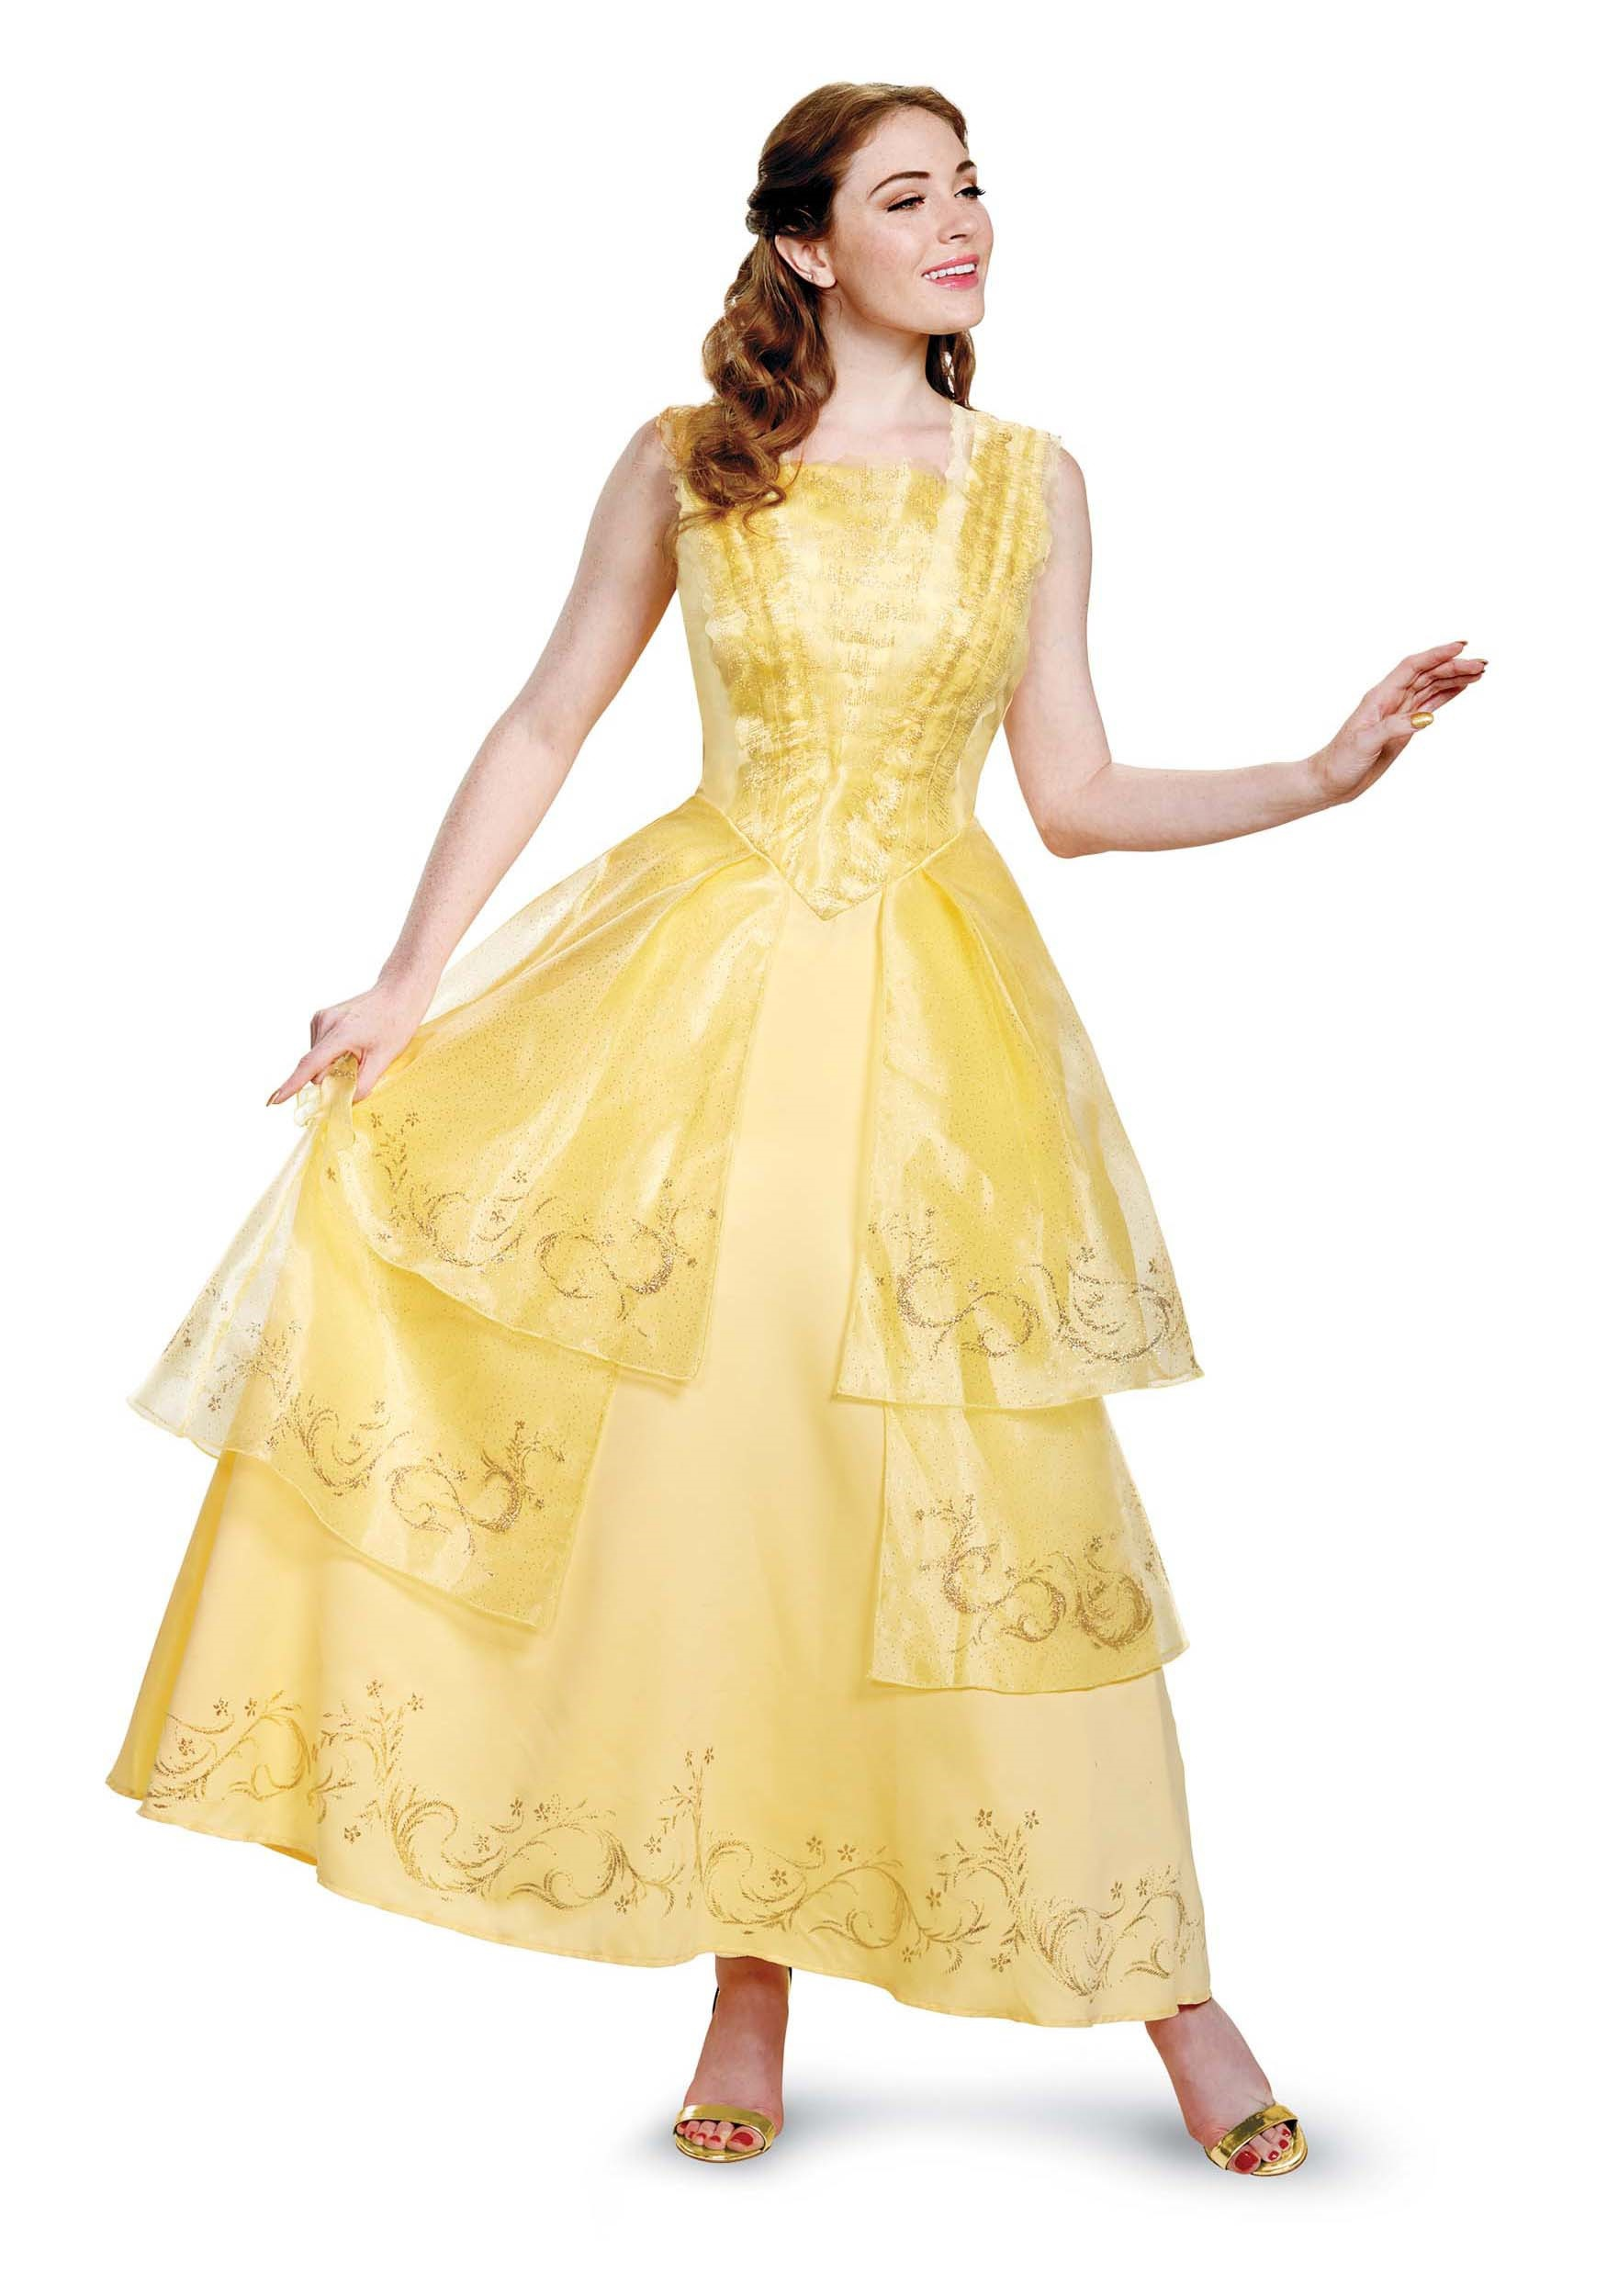 Beauty And The Beast Live Action Movie Design Yellow Gold BELLE BALL GOWN PRESTIGE ADULT Officially Licensed By Disney With Back Zipper